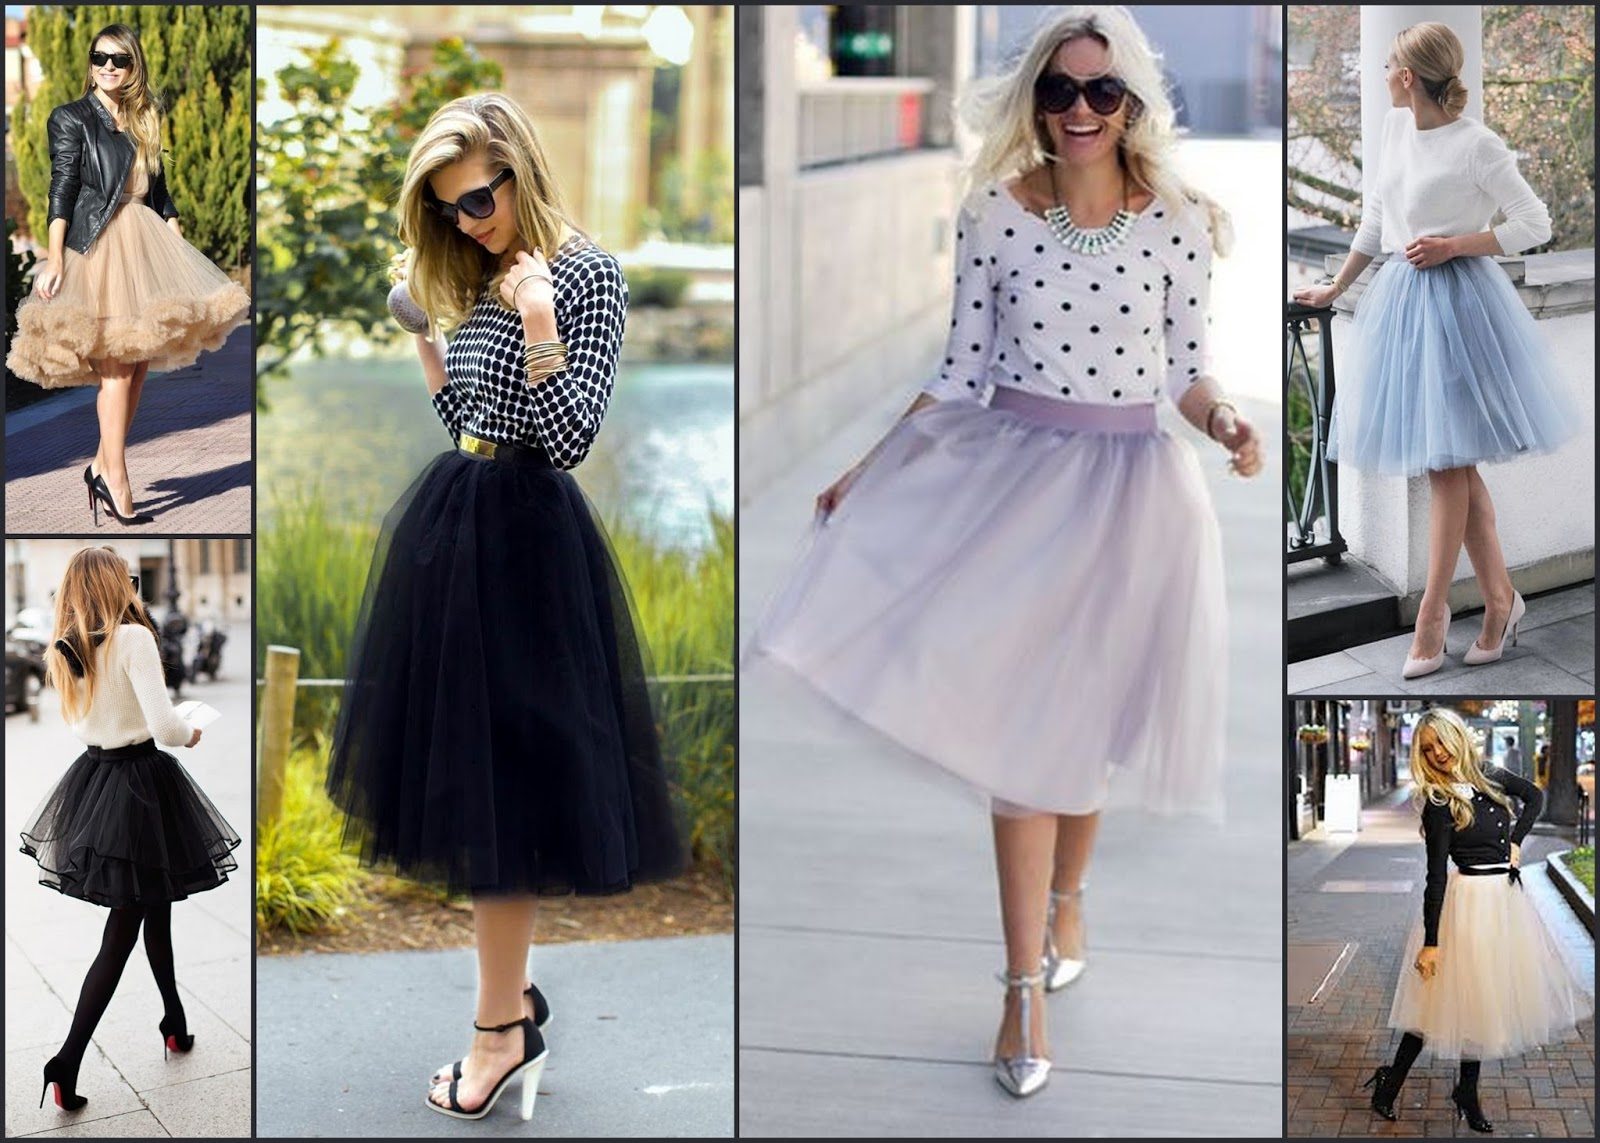 4 Ideas For Your New Year Eve Outfit Ethincthread